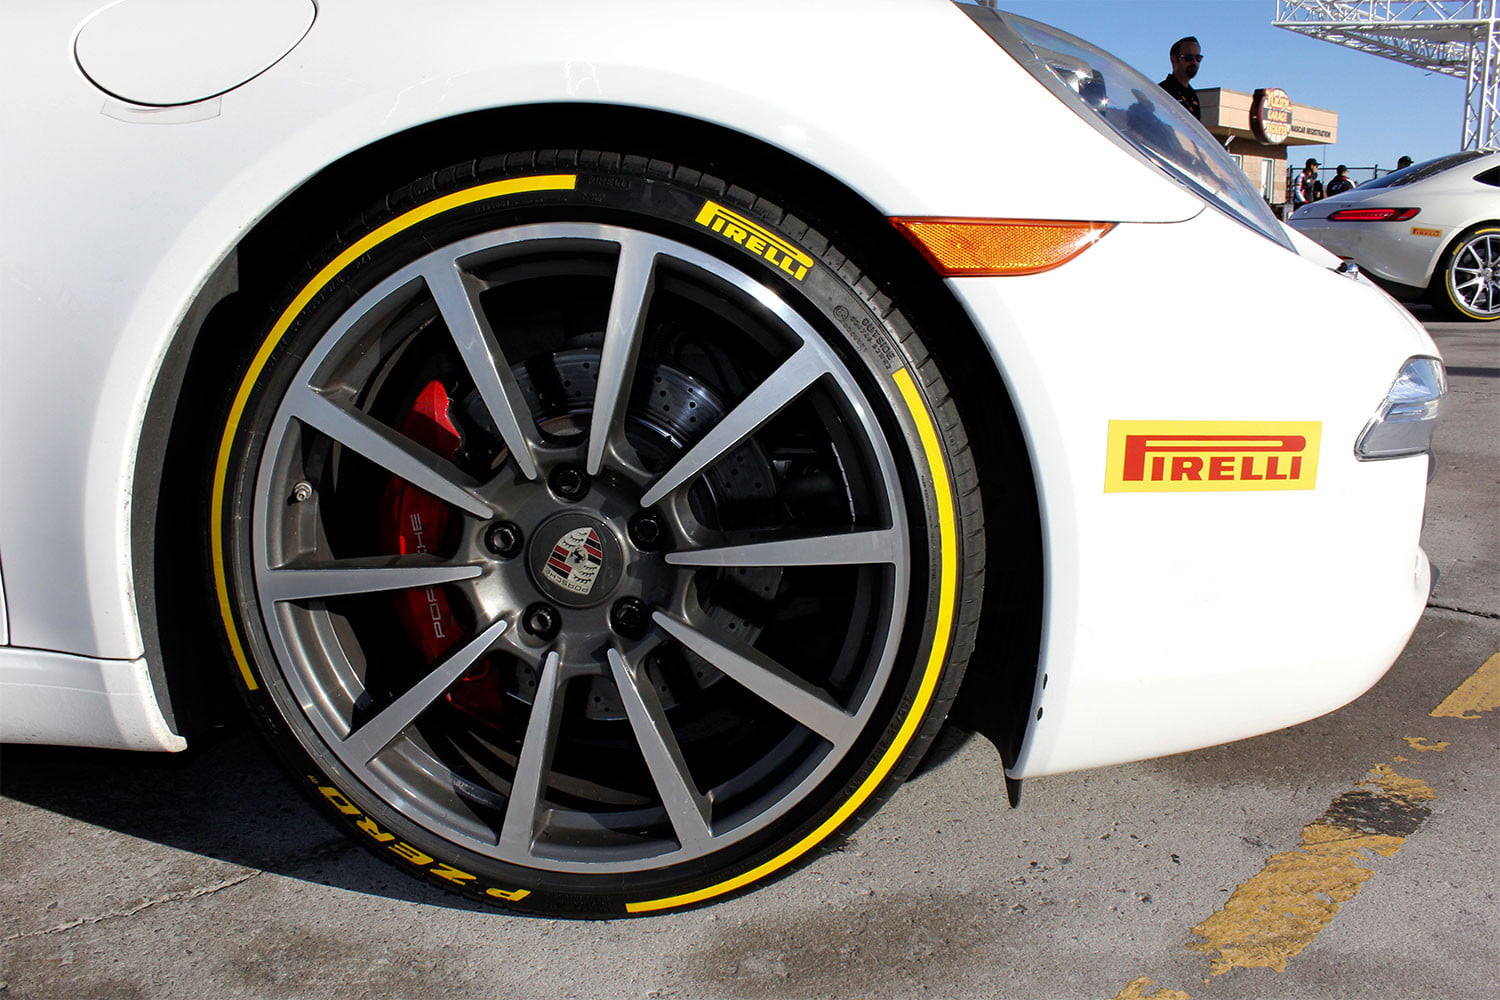 The New Pirelli P Zero Tires Are Bred To Make Good Cars